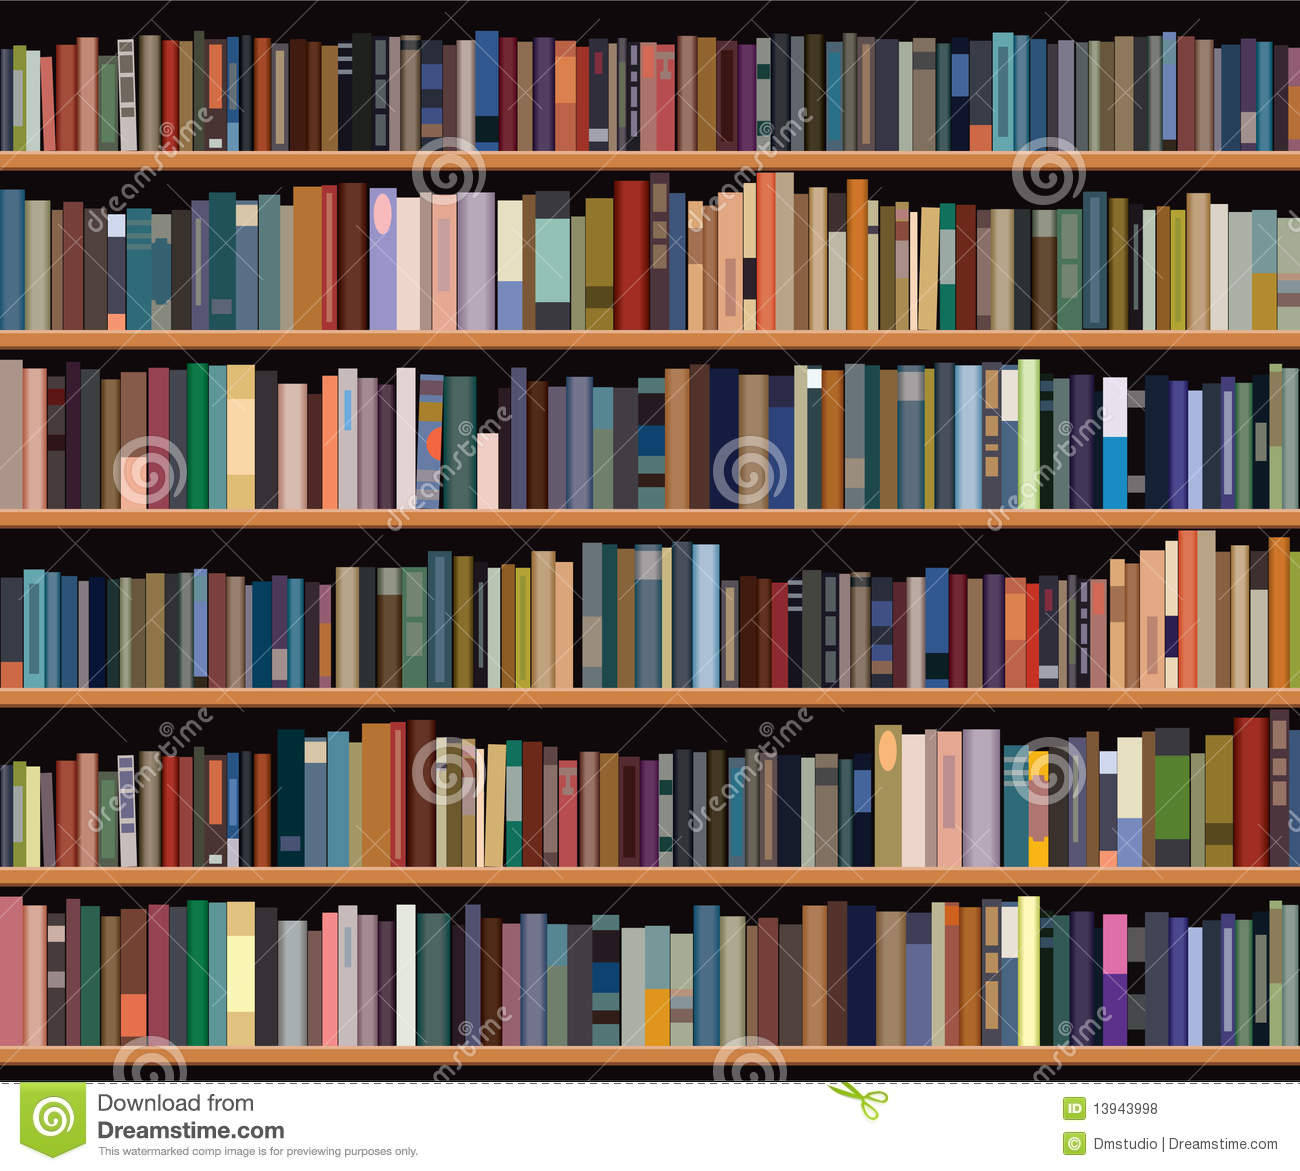 Superb img of Bookshelf Royalty Free Stock Photos Image: 13943998 with #9F5E2C color and 1300x1171 pixels